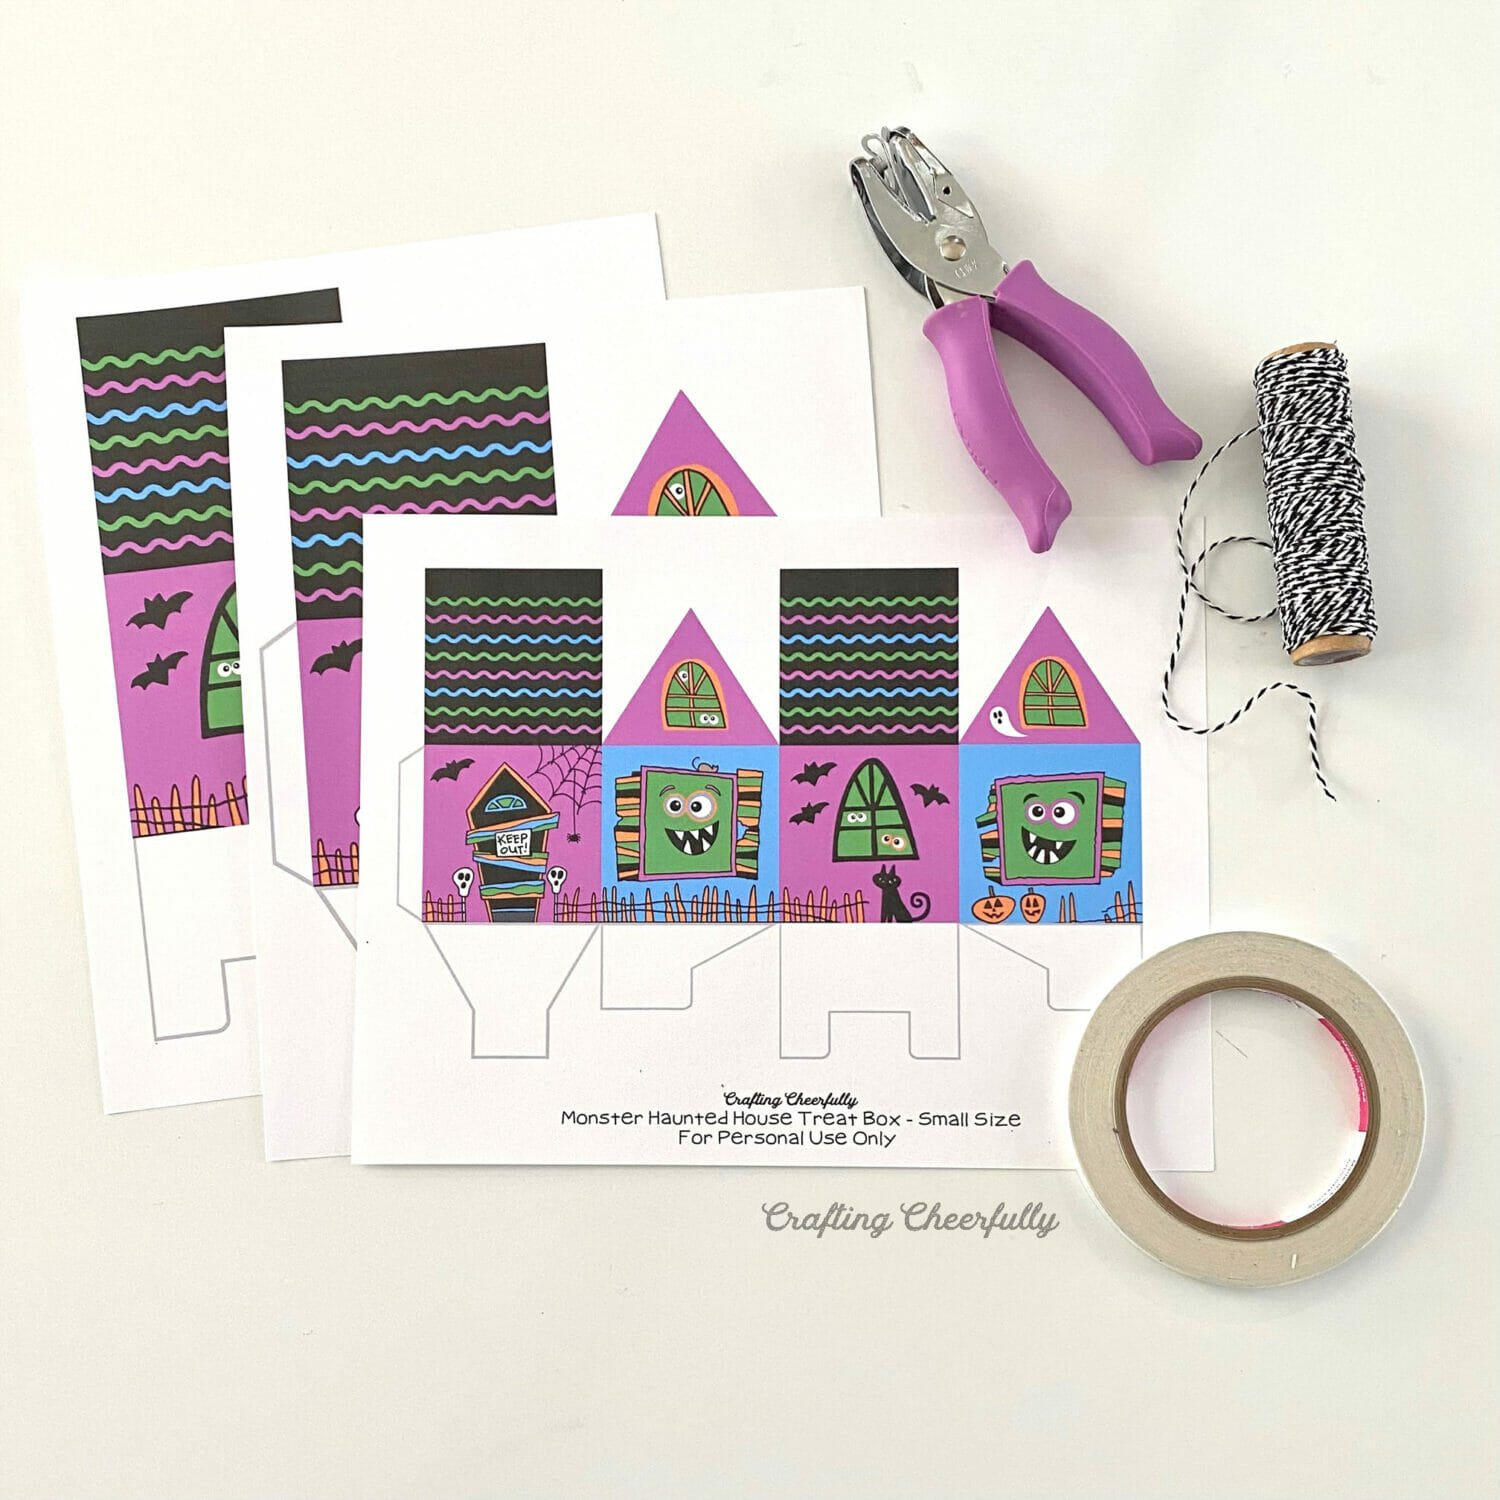 Printable box pages lay next to a hole punch, Baker's twine and a roll of double-sided tape.